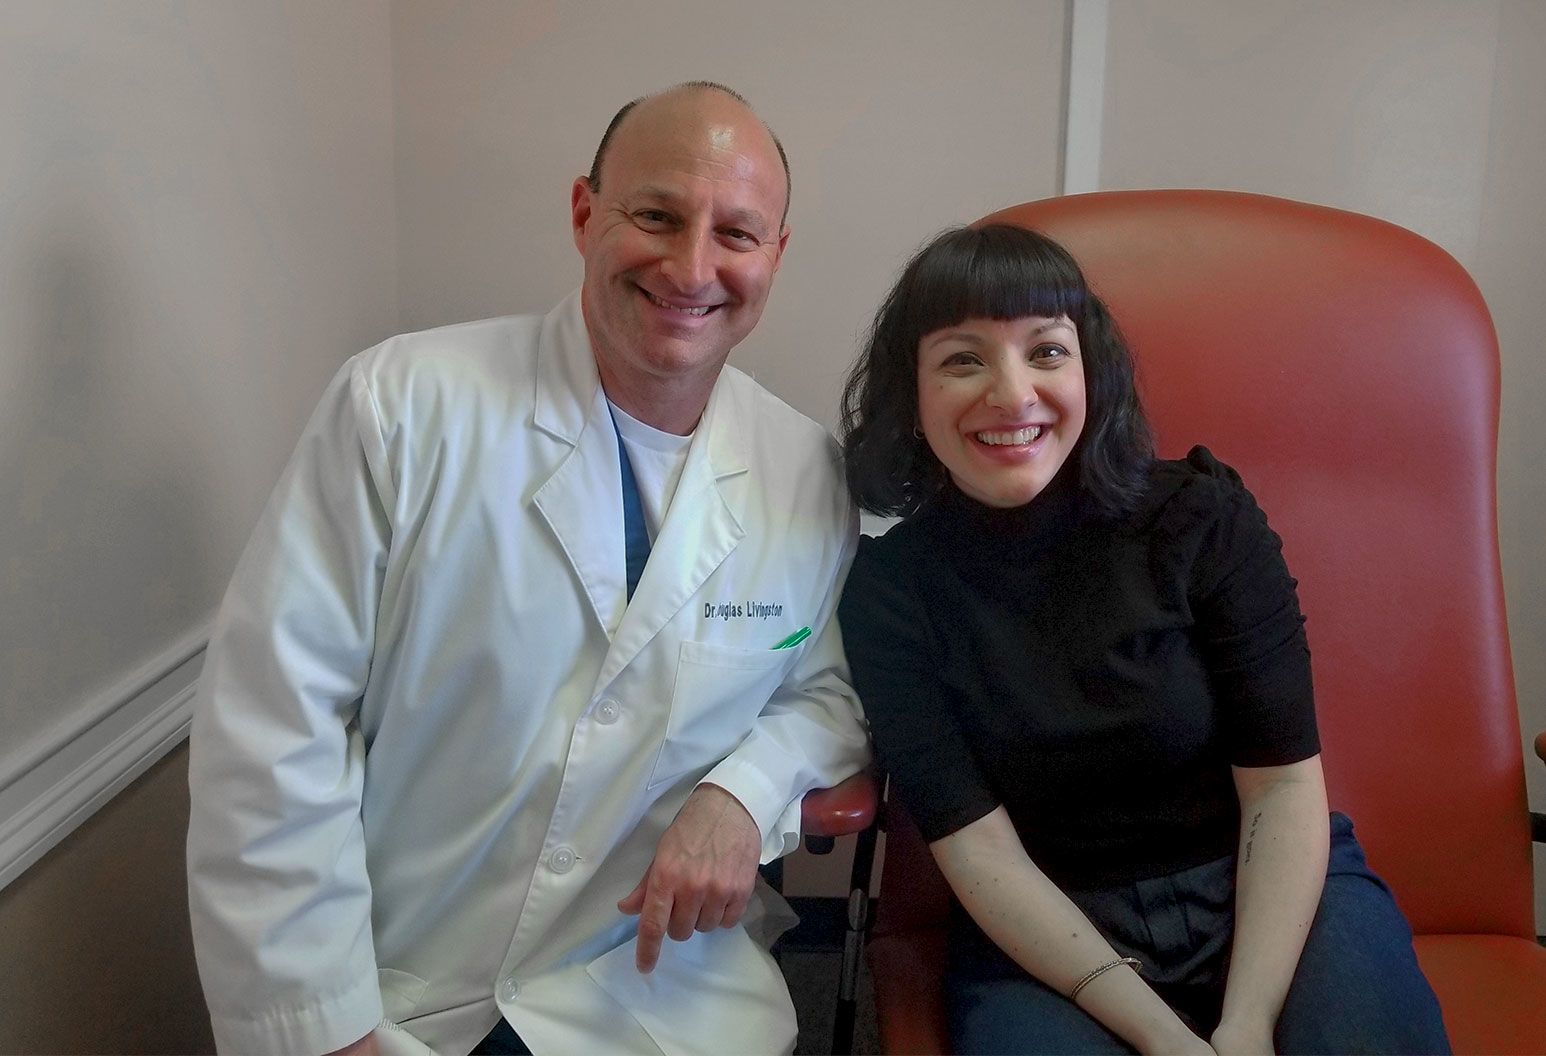 A man in a white doctors coat smiles at the camera. Next to him is a woman with short black hair and bangs, wearing a black sweater sitting on a red chair smiling as well.